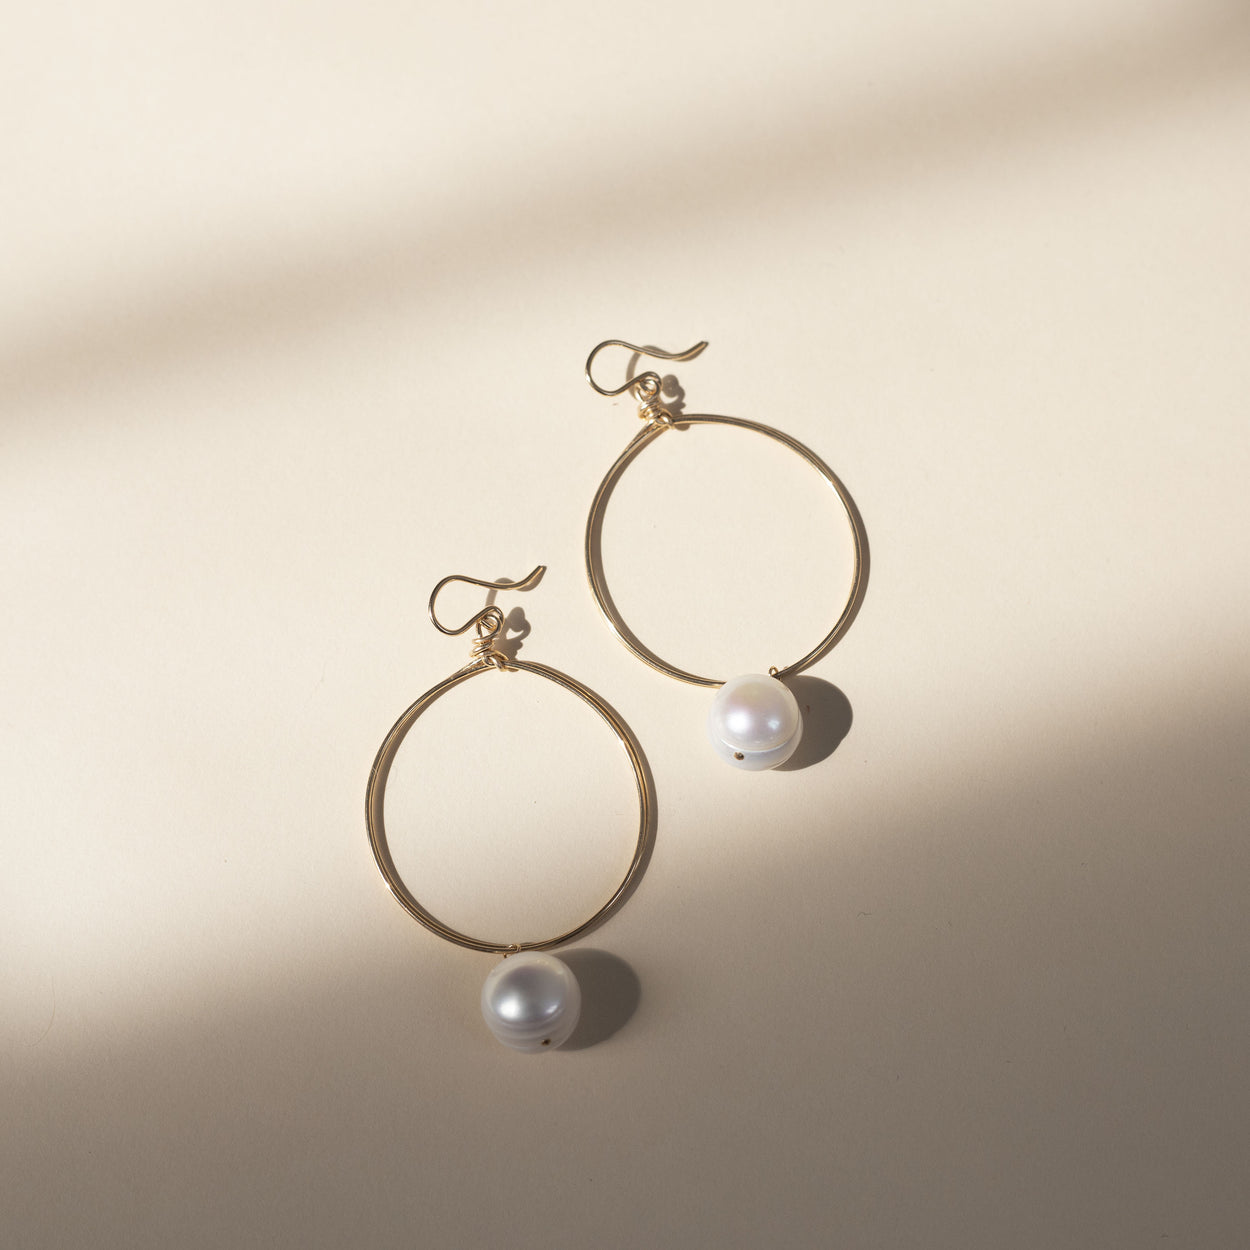 Cindy Borders Jewelry - Circle Earrings